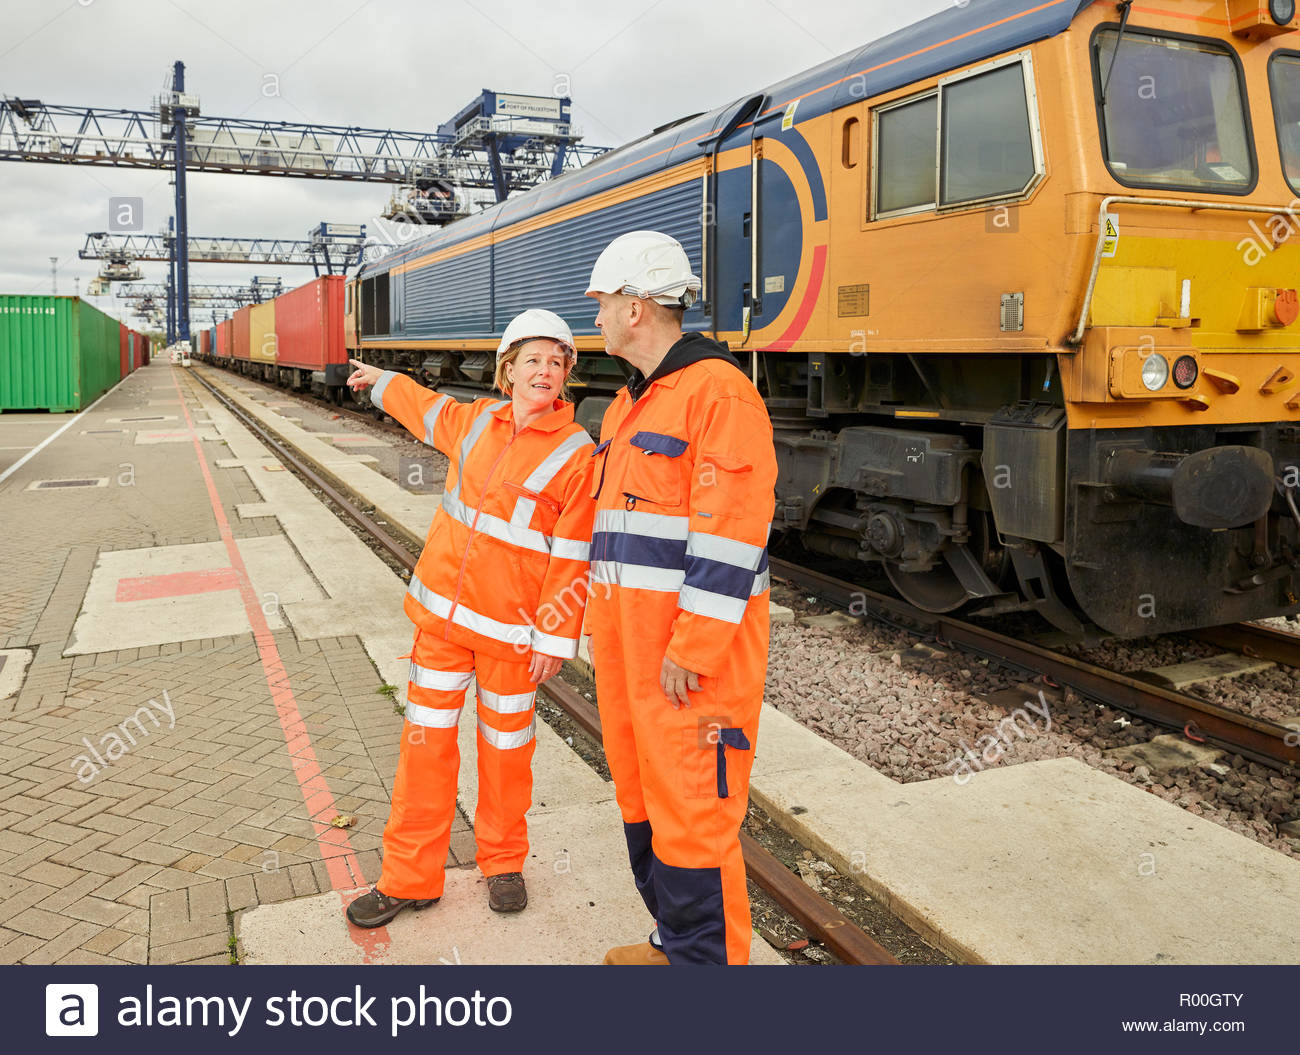 Dock manager advising dock worder loading cargo to train - Stock Image